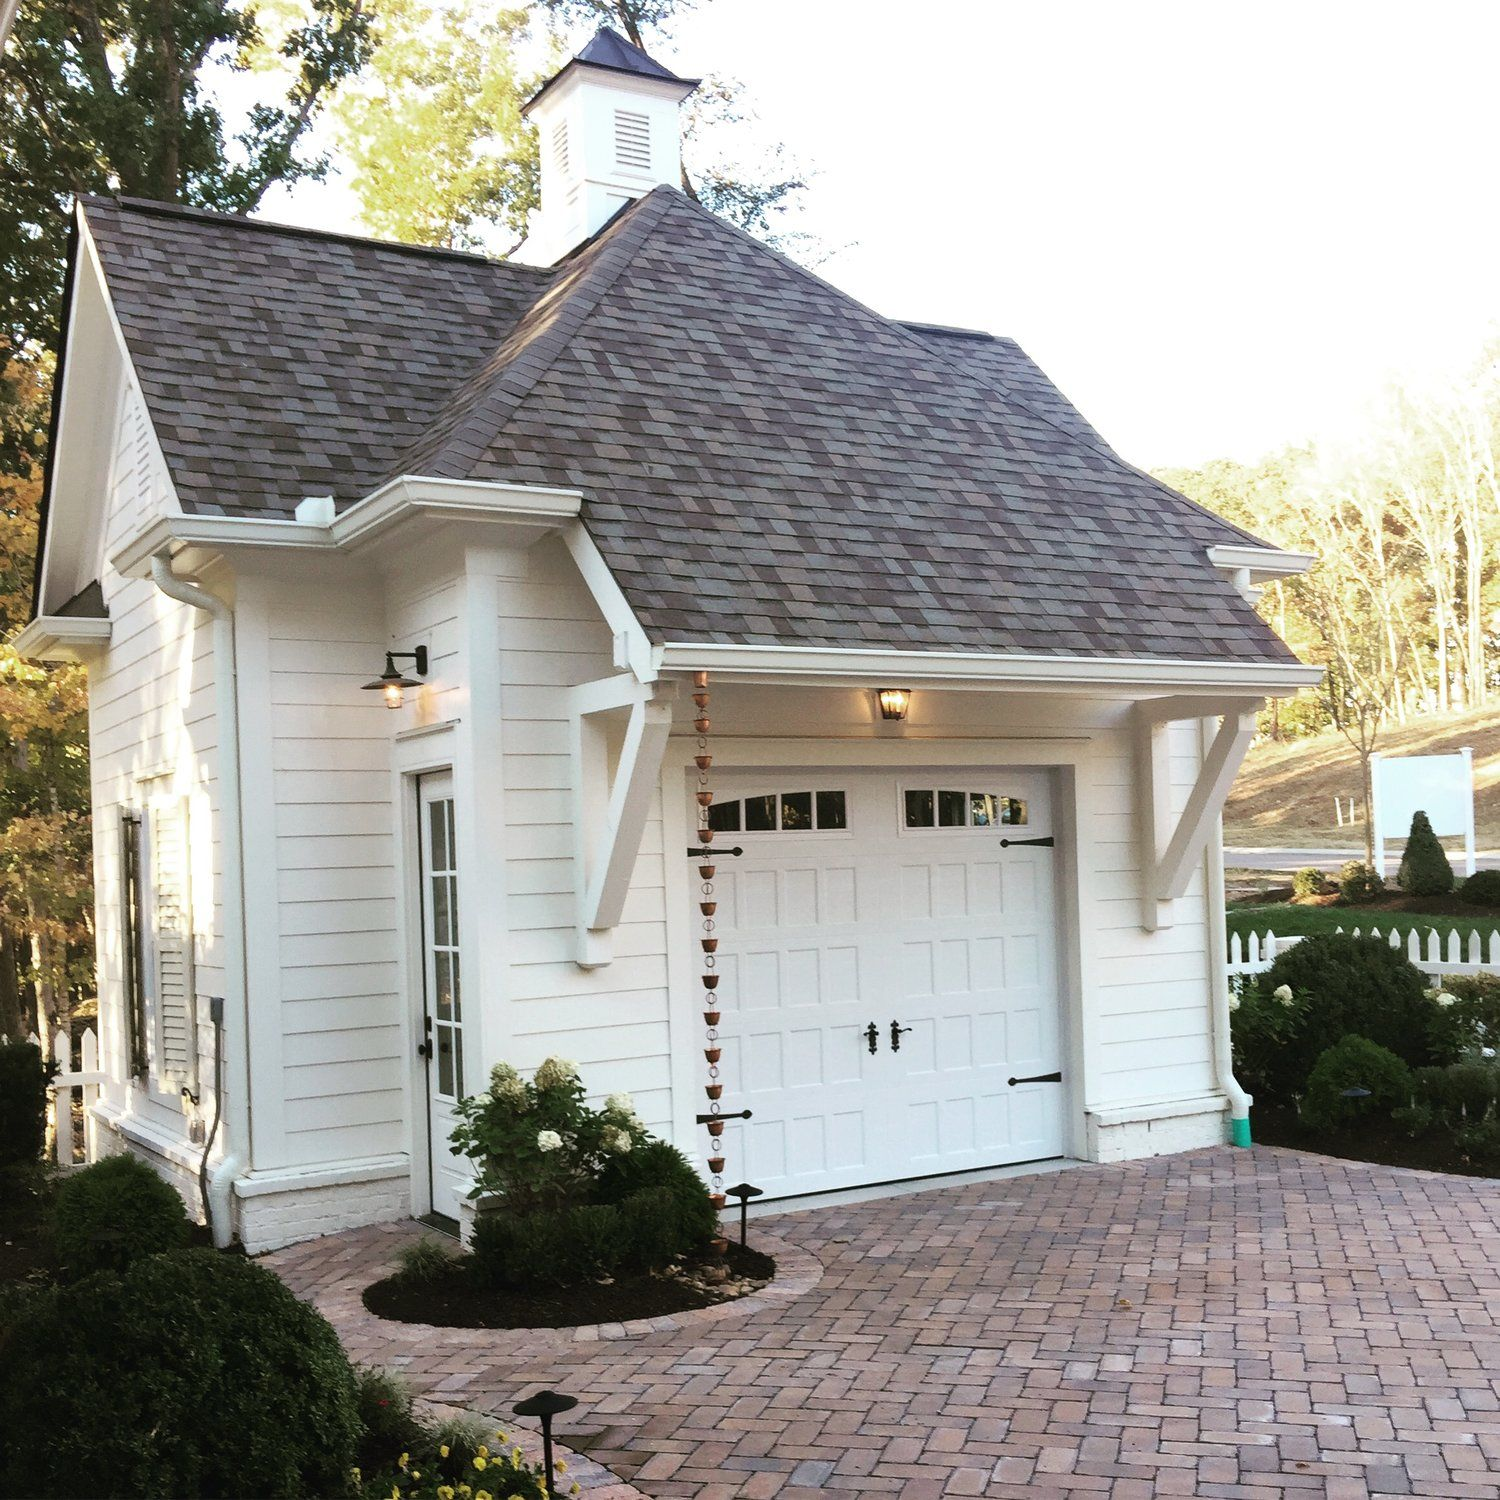 Affordable Garage Apartment 2236sl: Too Much Personality To Be Labeled A Shed